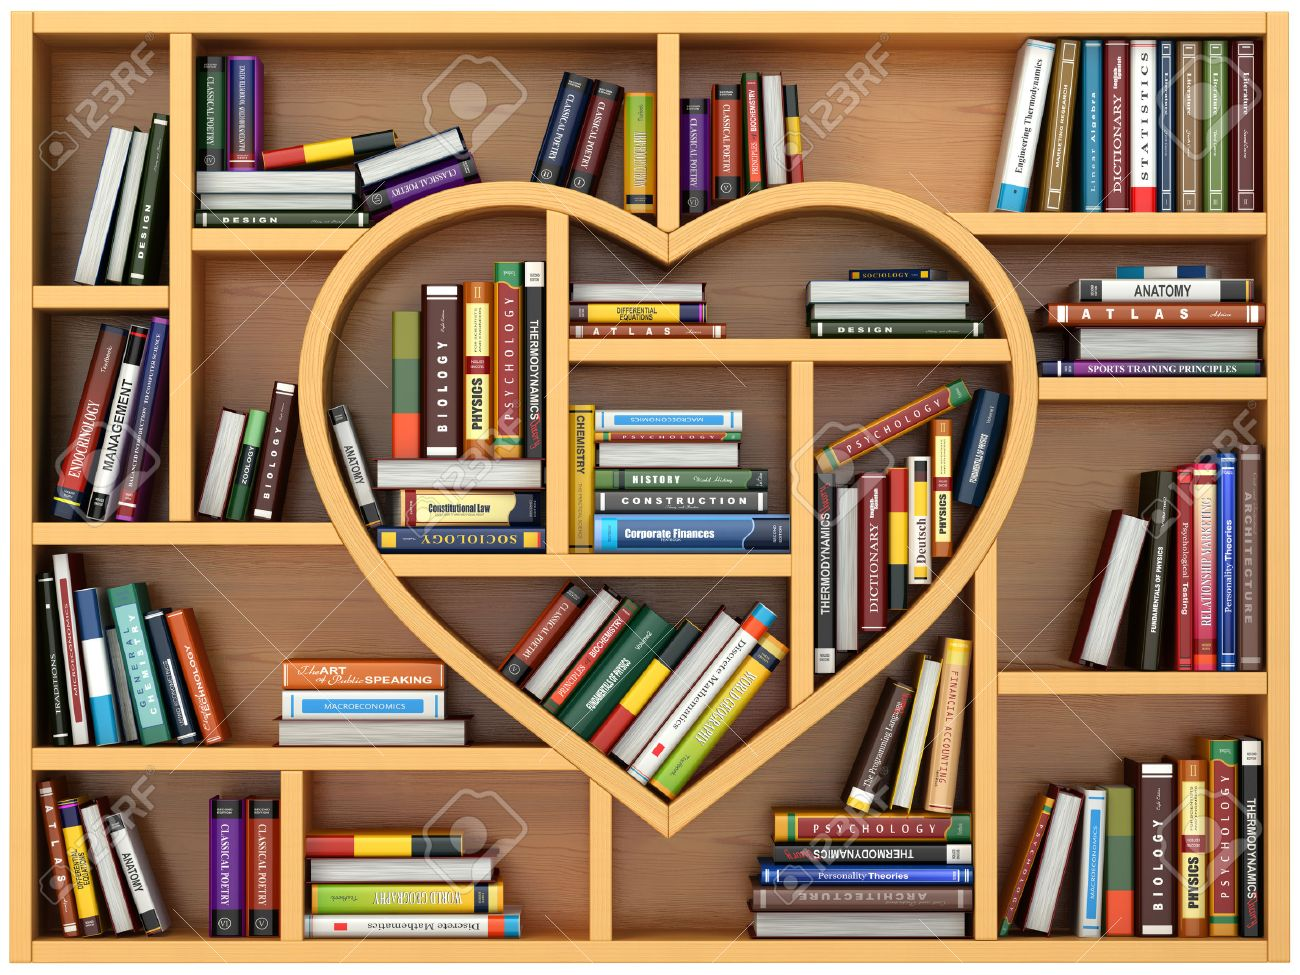 Bookshelf with books and textbooks in form of heart. I love reading & Bookshelf Stock Photos. Royalty Free Bookshelf Images